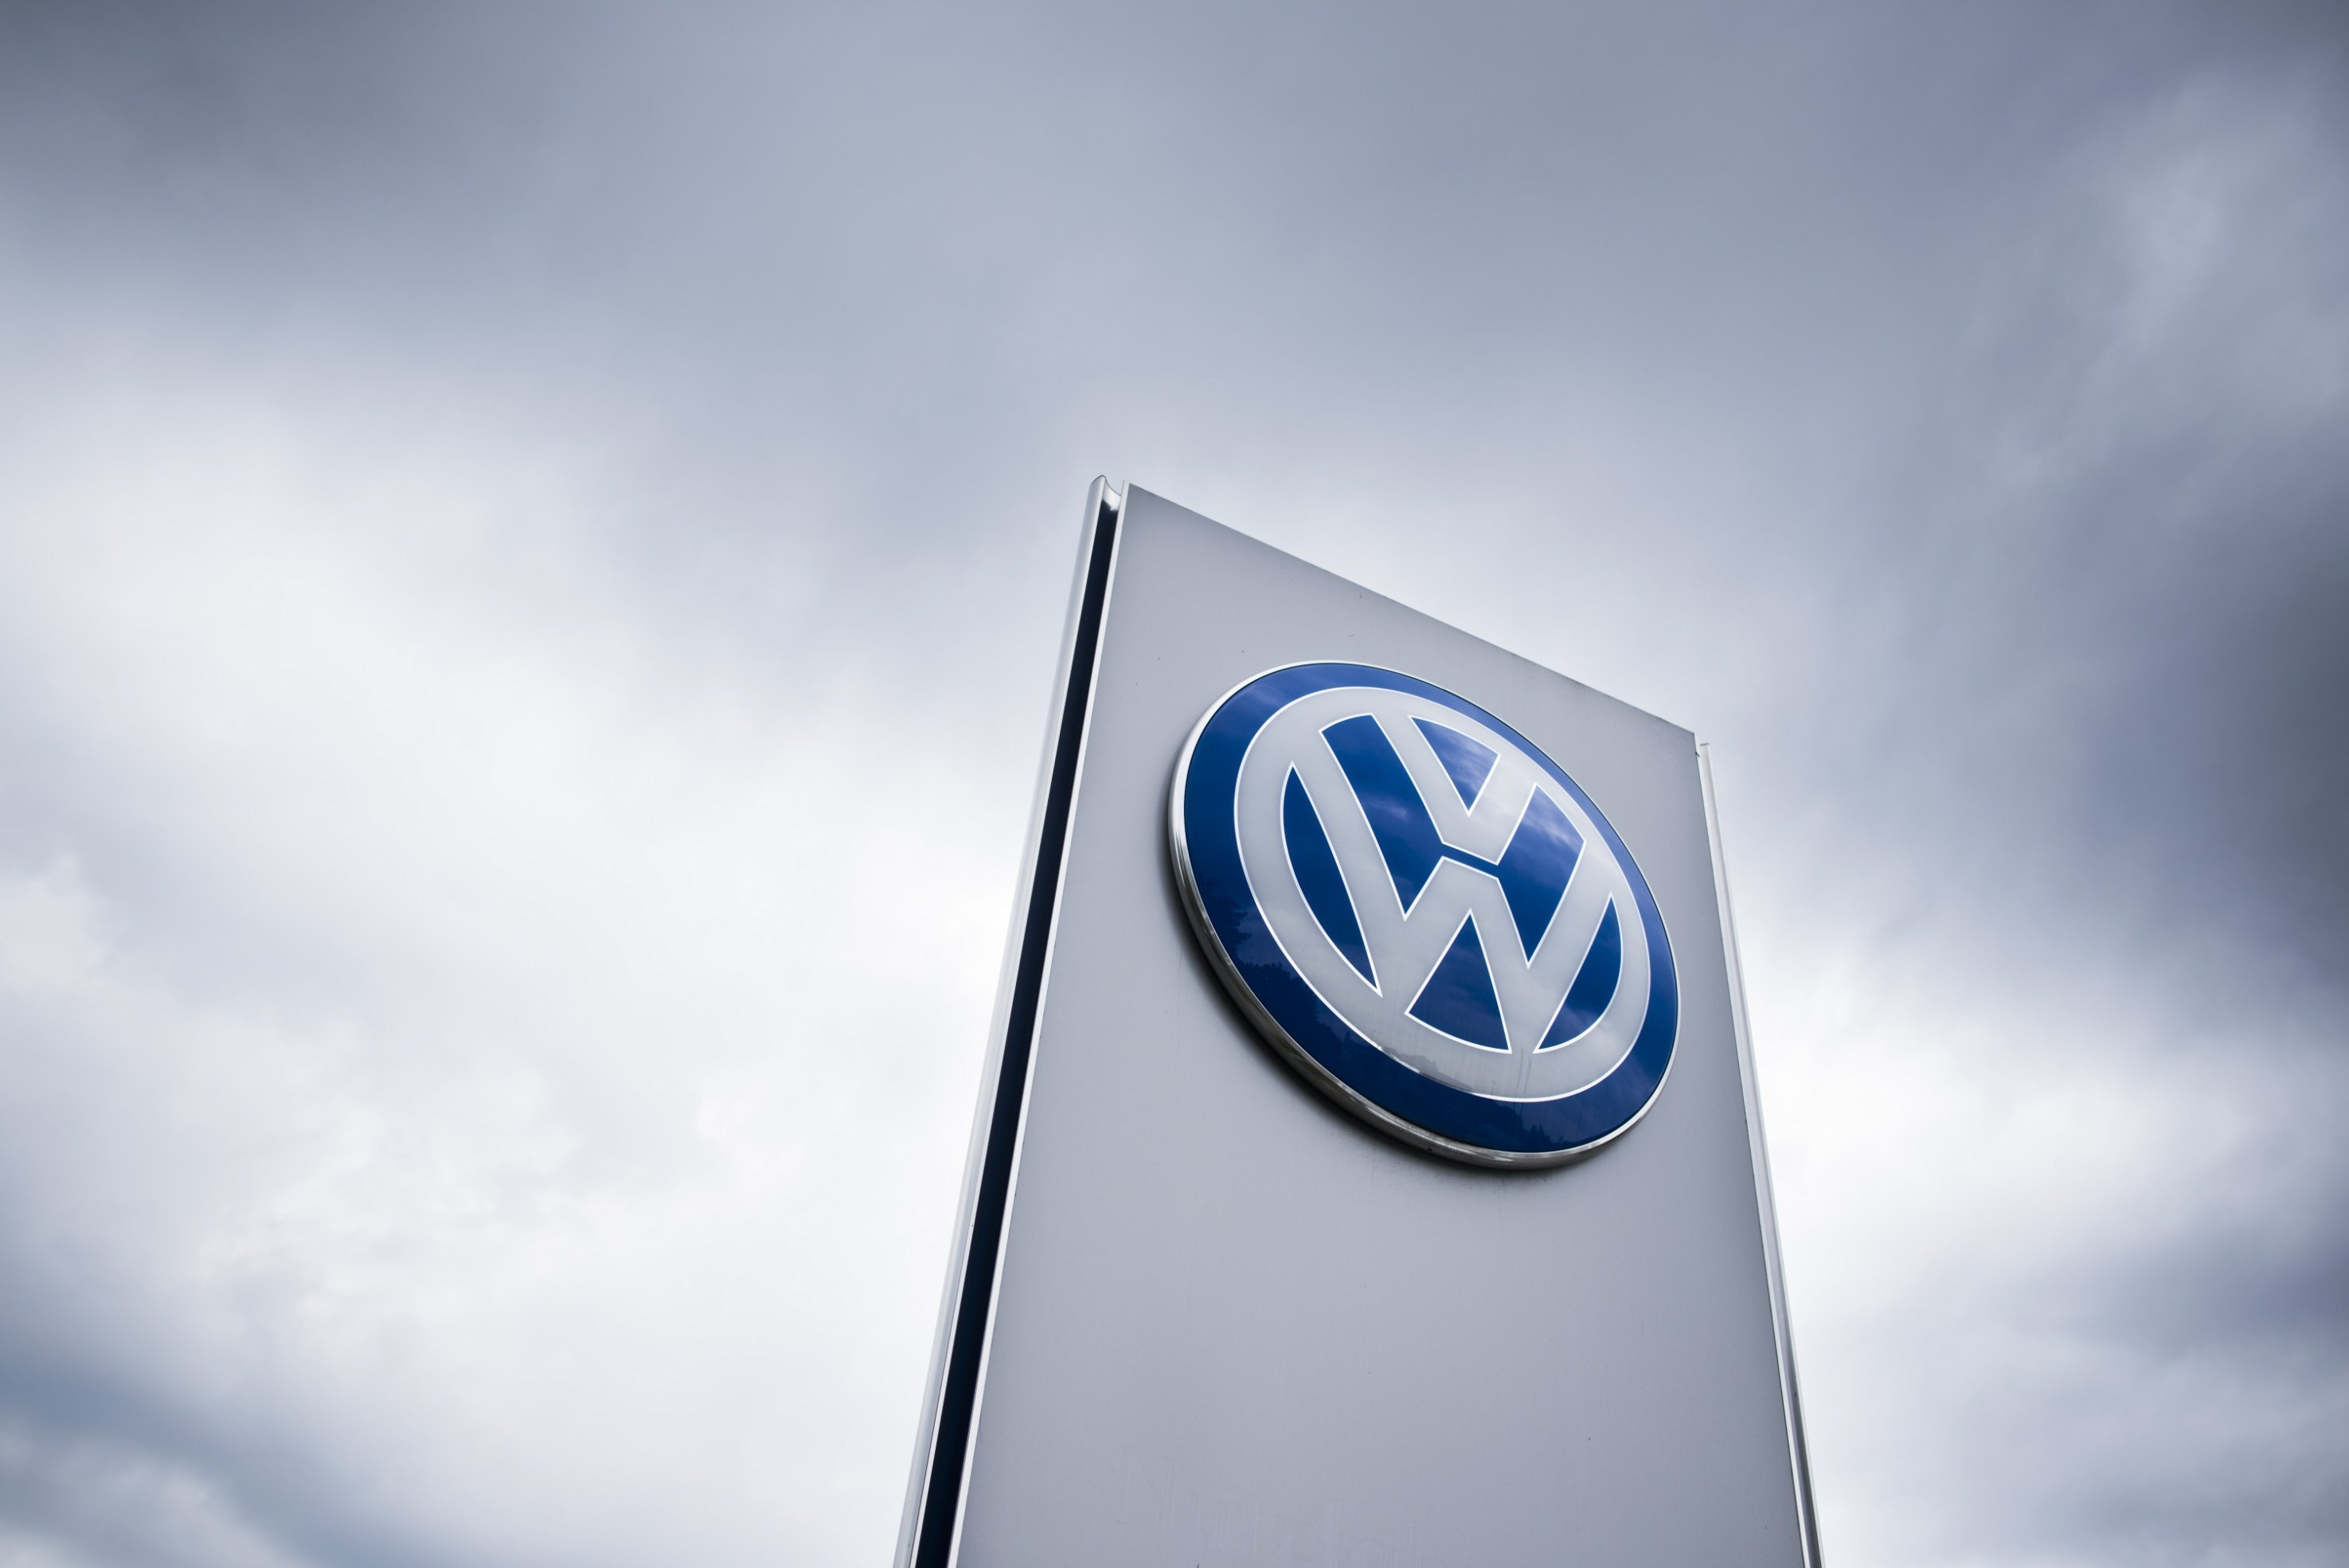 Volkswagen CEO says monkey tests were 'unethical and repulsive'